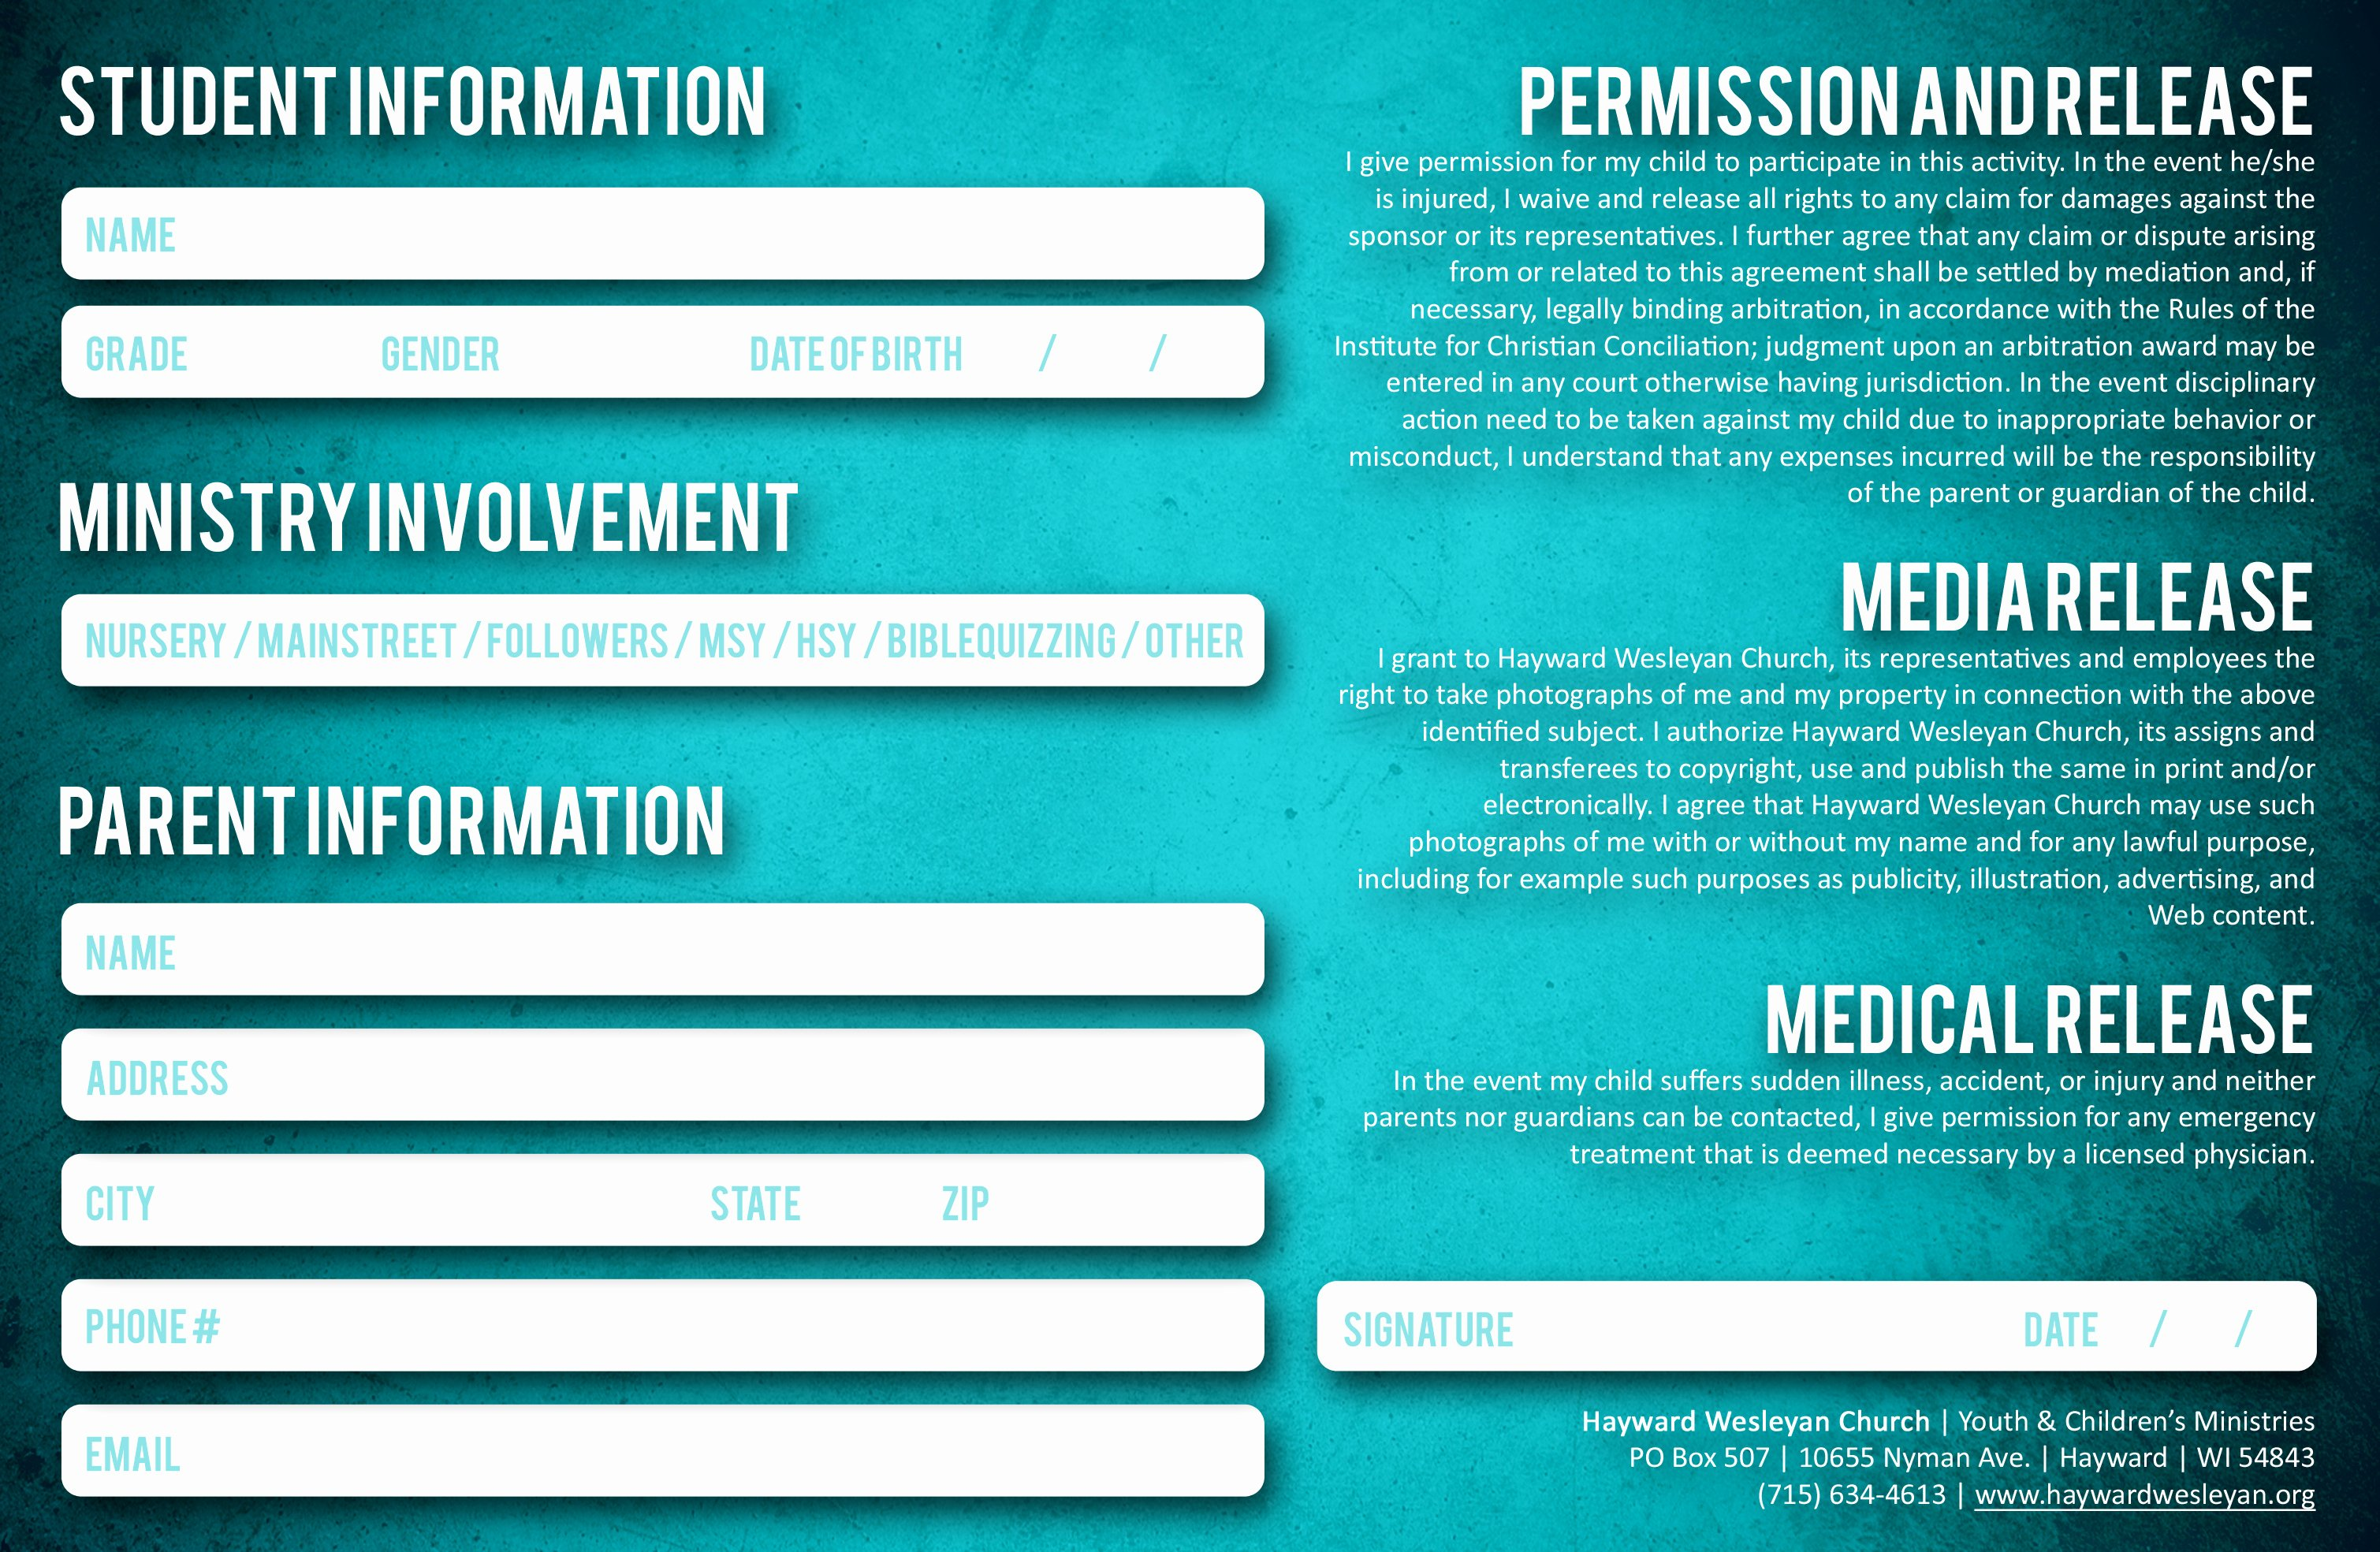 Student Information Card Template Awesome Student and Parent Information and Release Cards